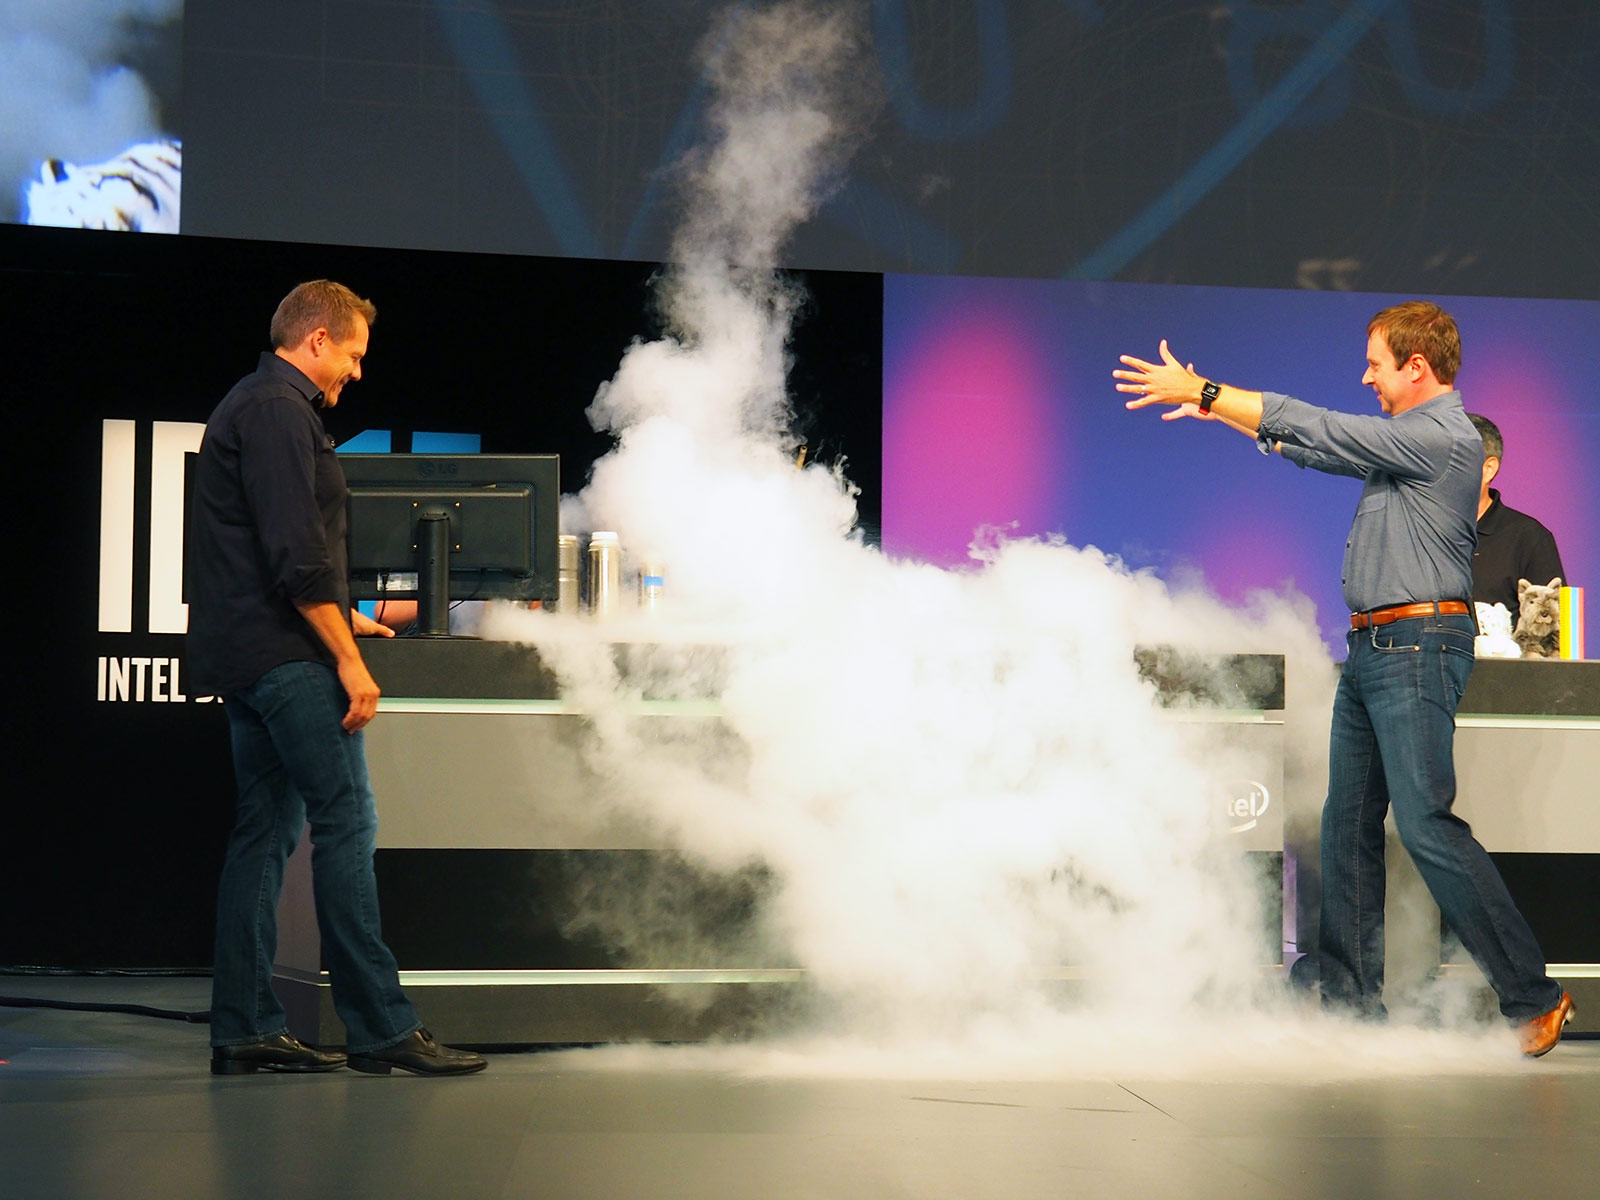 He Pours Liquid Nitrogen On An Intel Skylake CPU At IDF. What Happens Next Is Astonishing!